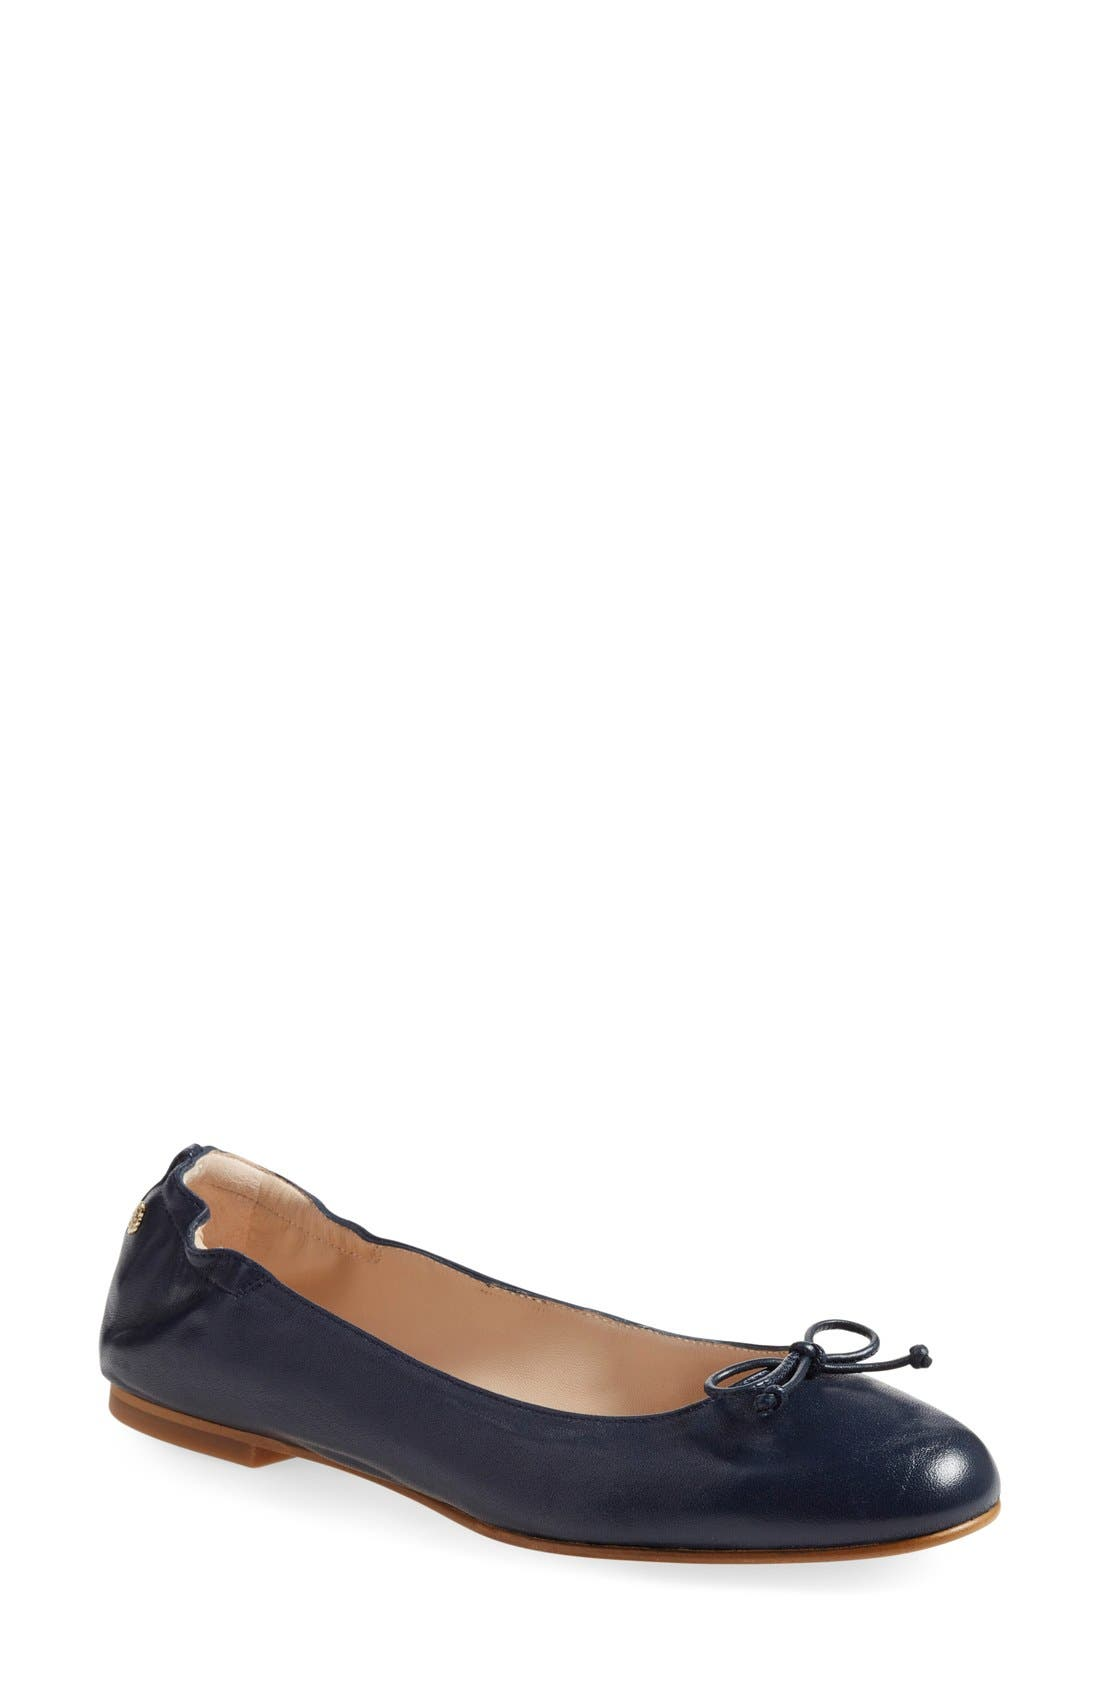 Alternate Image 1 Selected - L.K. Bennett 'Thea' Ballet Flat (Women)